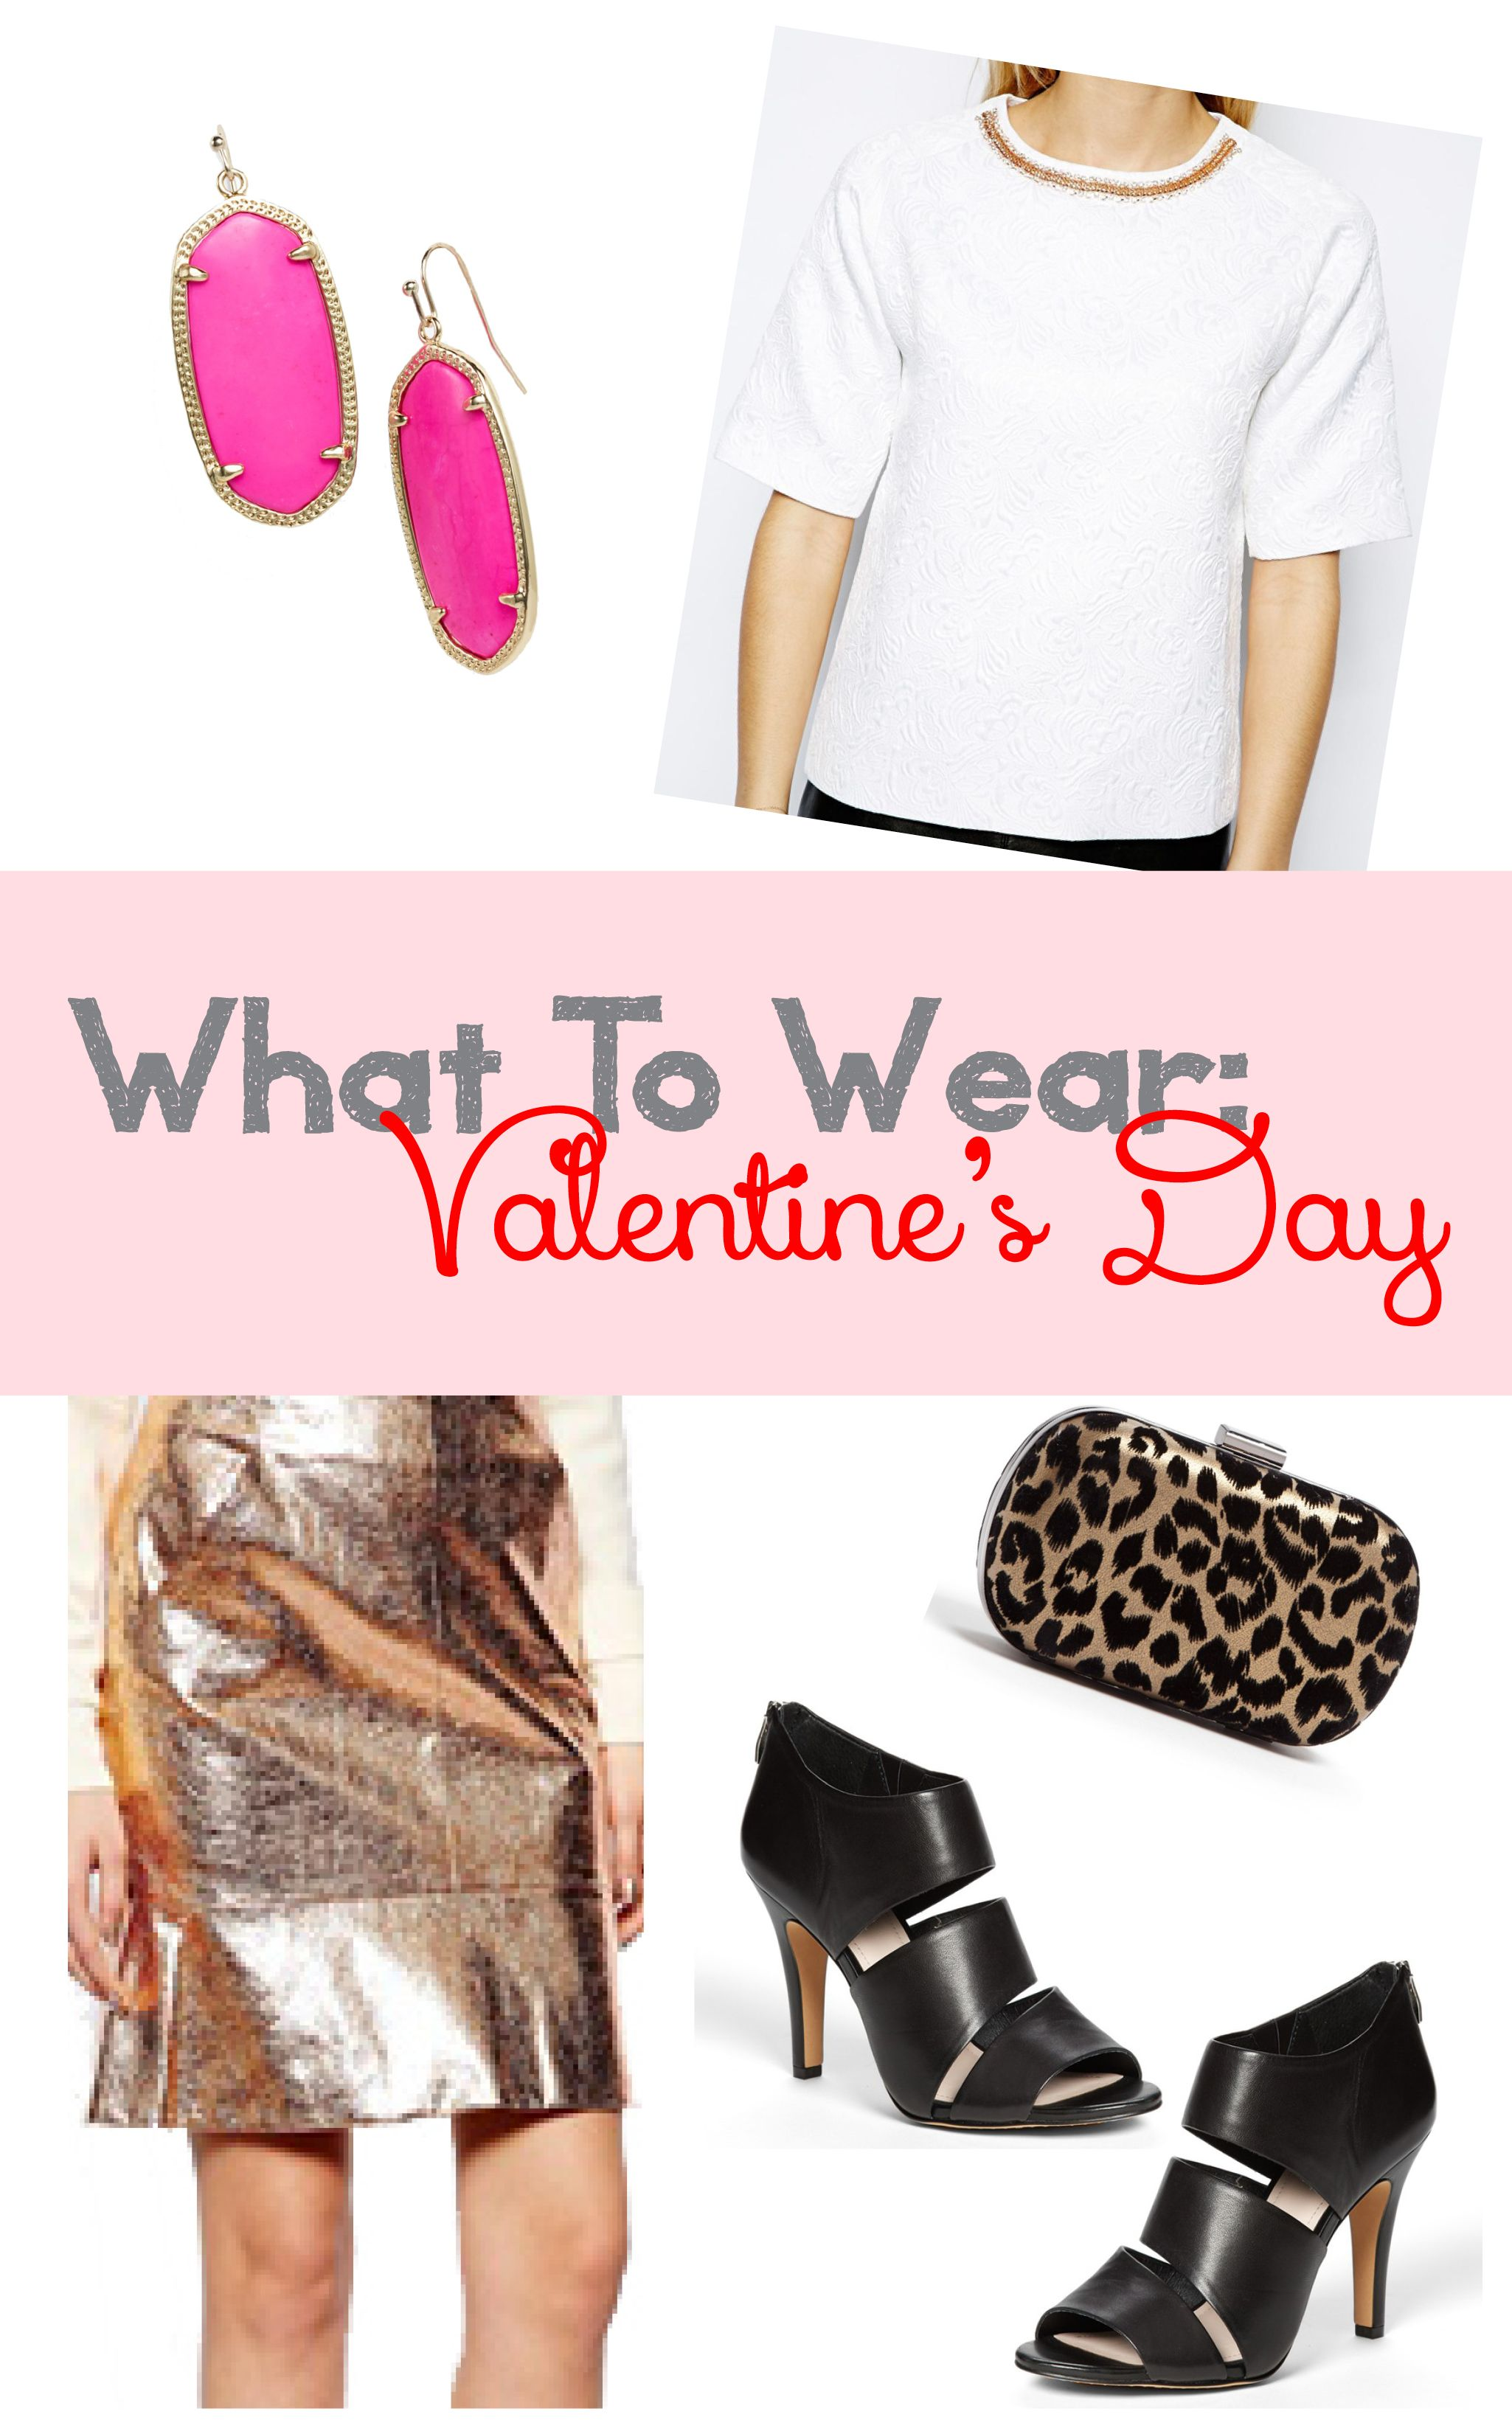 What To Wear: Valentine's Day Outfit #metallic #leopard #neon